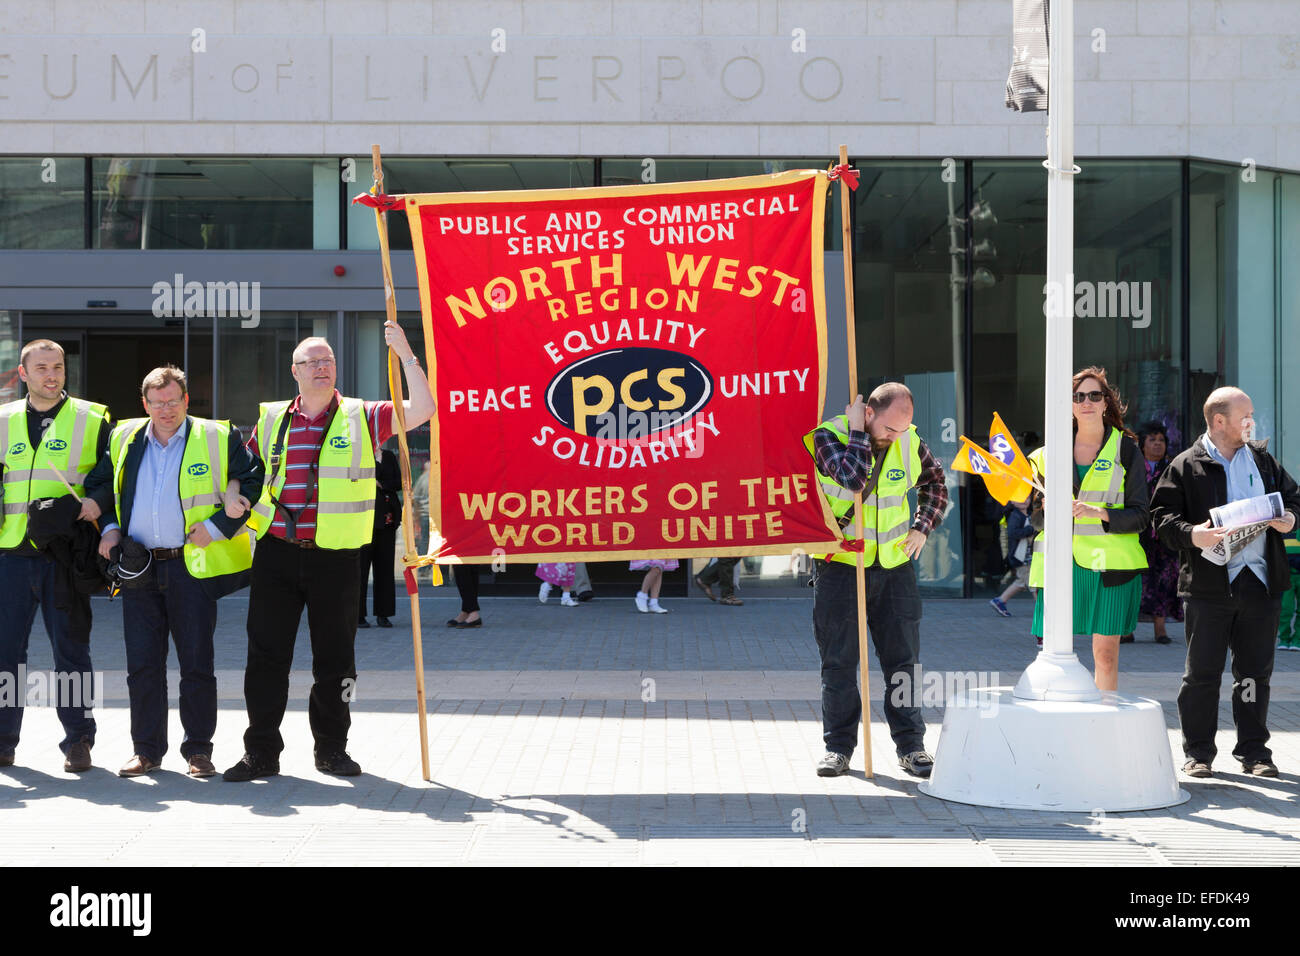 PCS Union members protest against government cuts in Liverpool - Stock Image